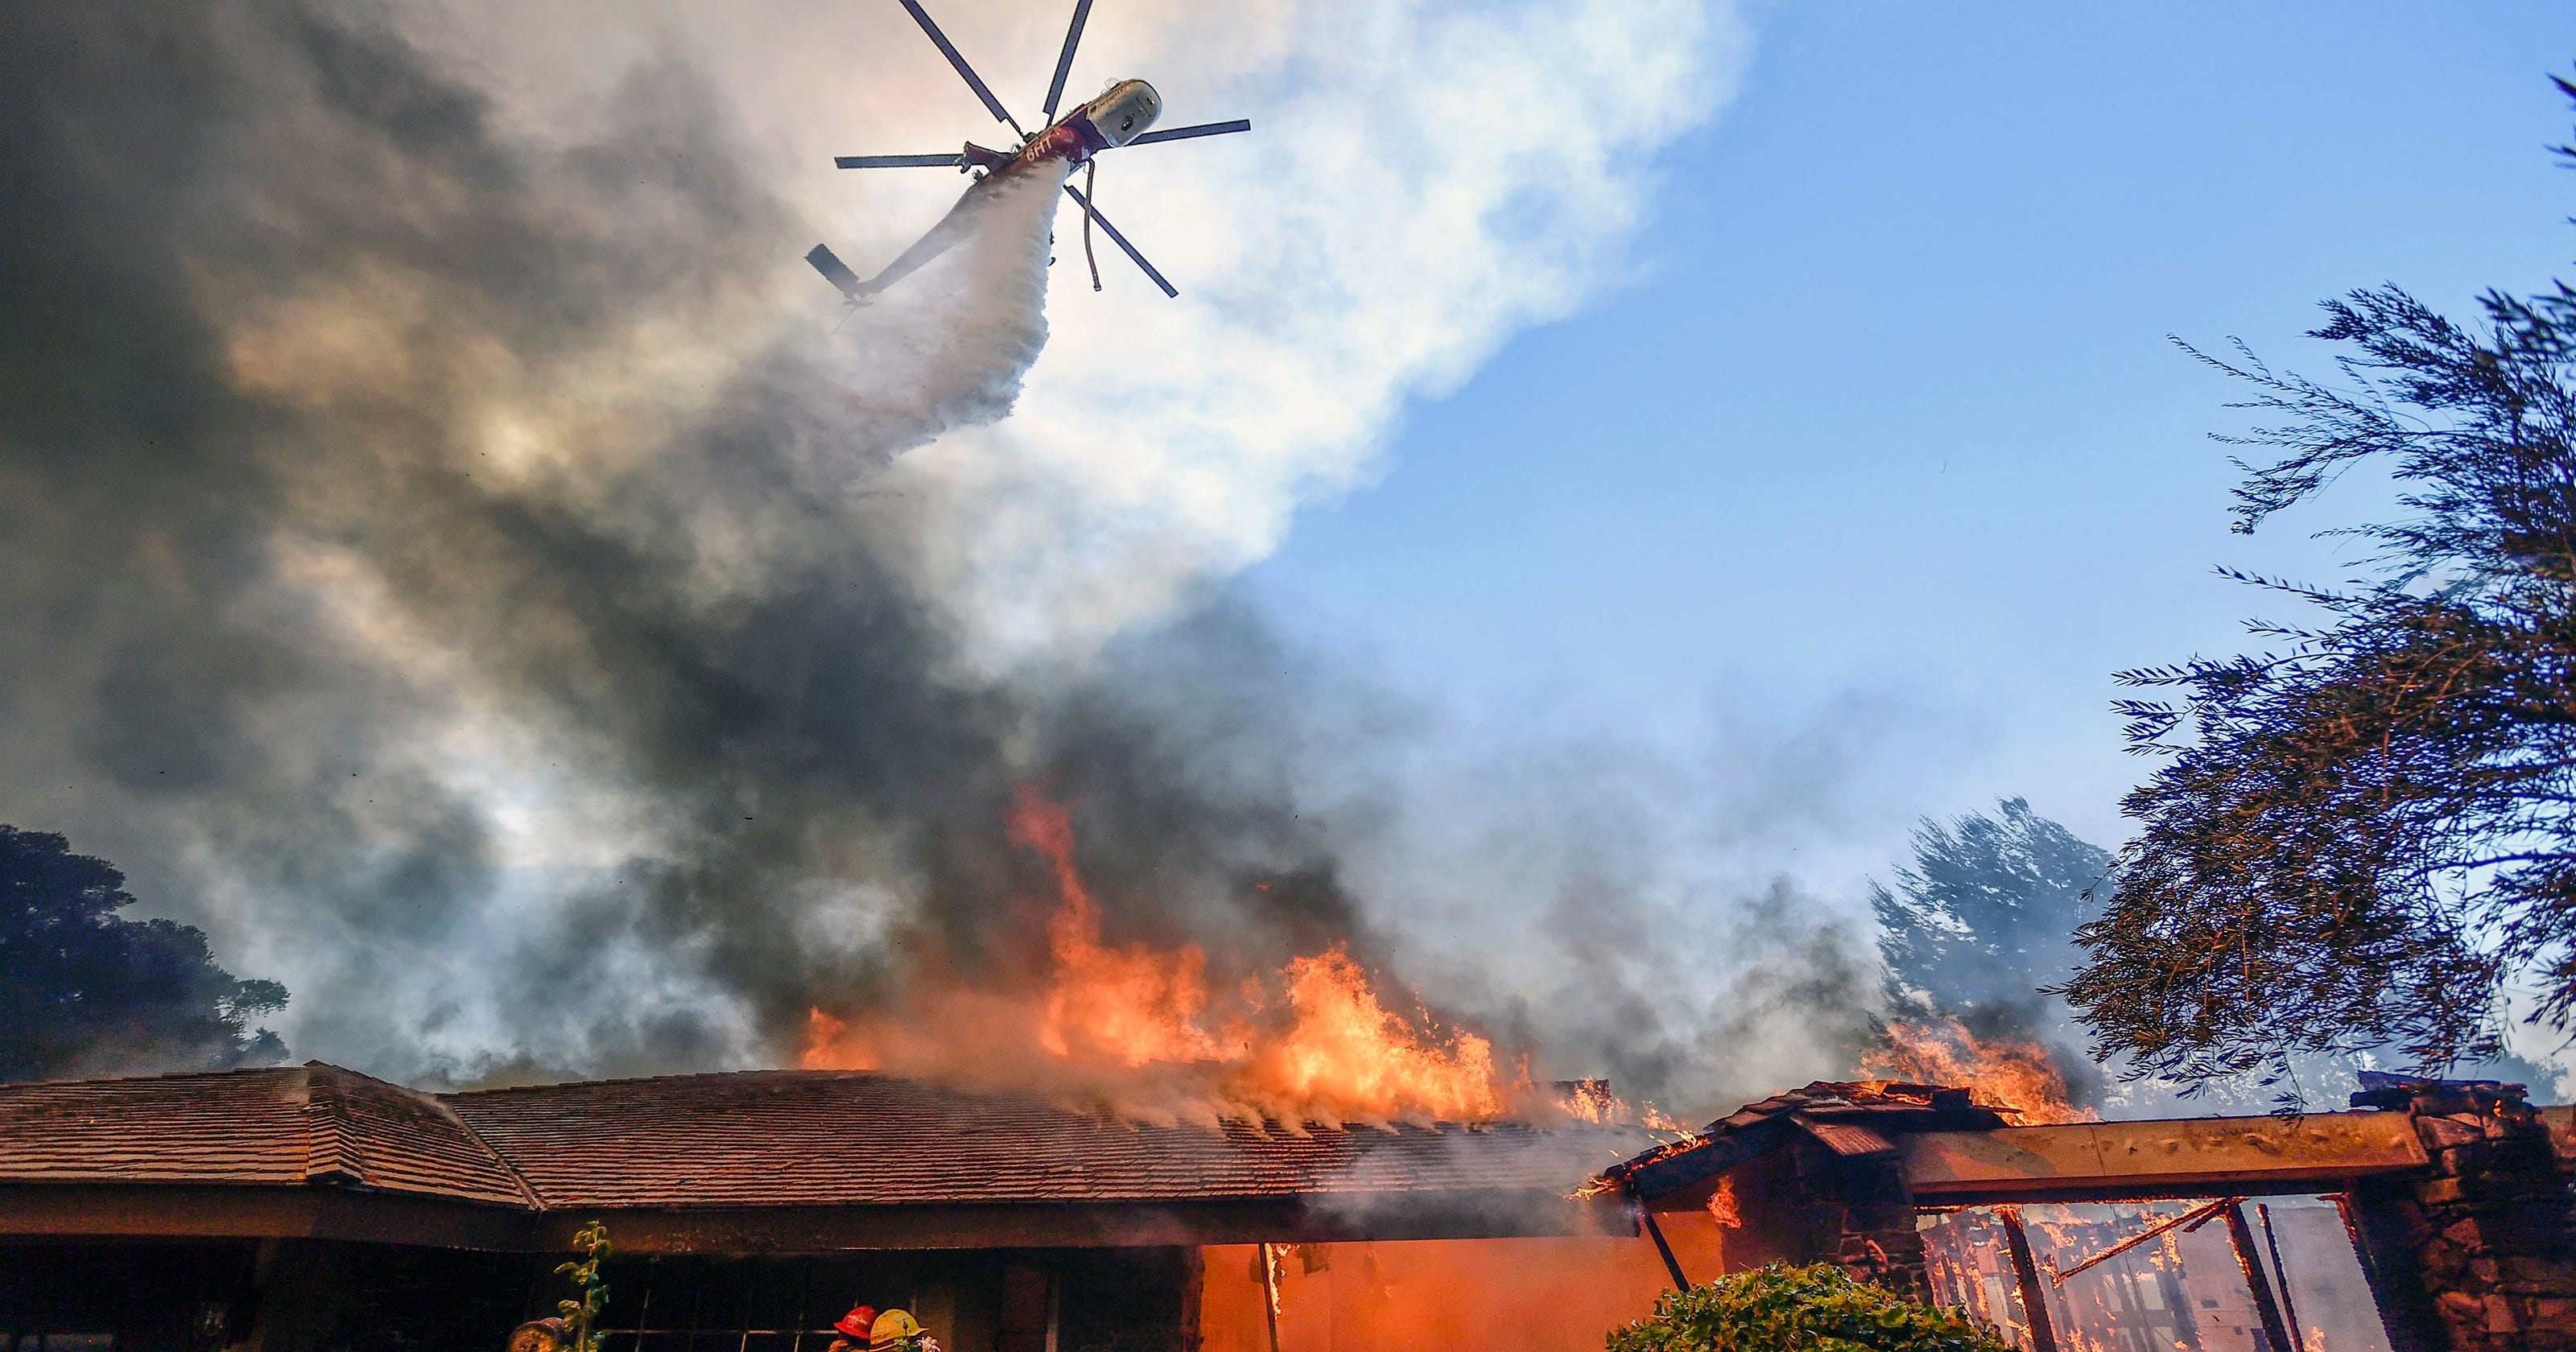 Colorado wildfire news, warnings, maps, help  The Denver Post